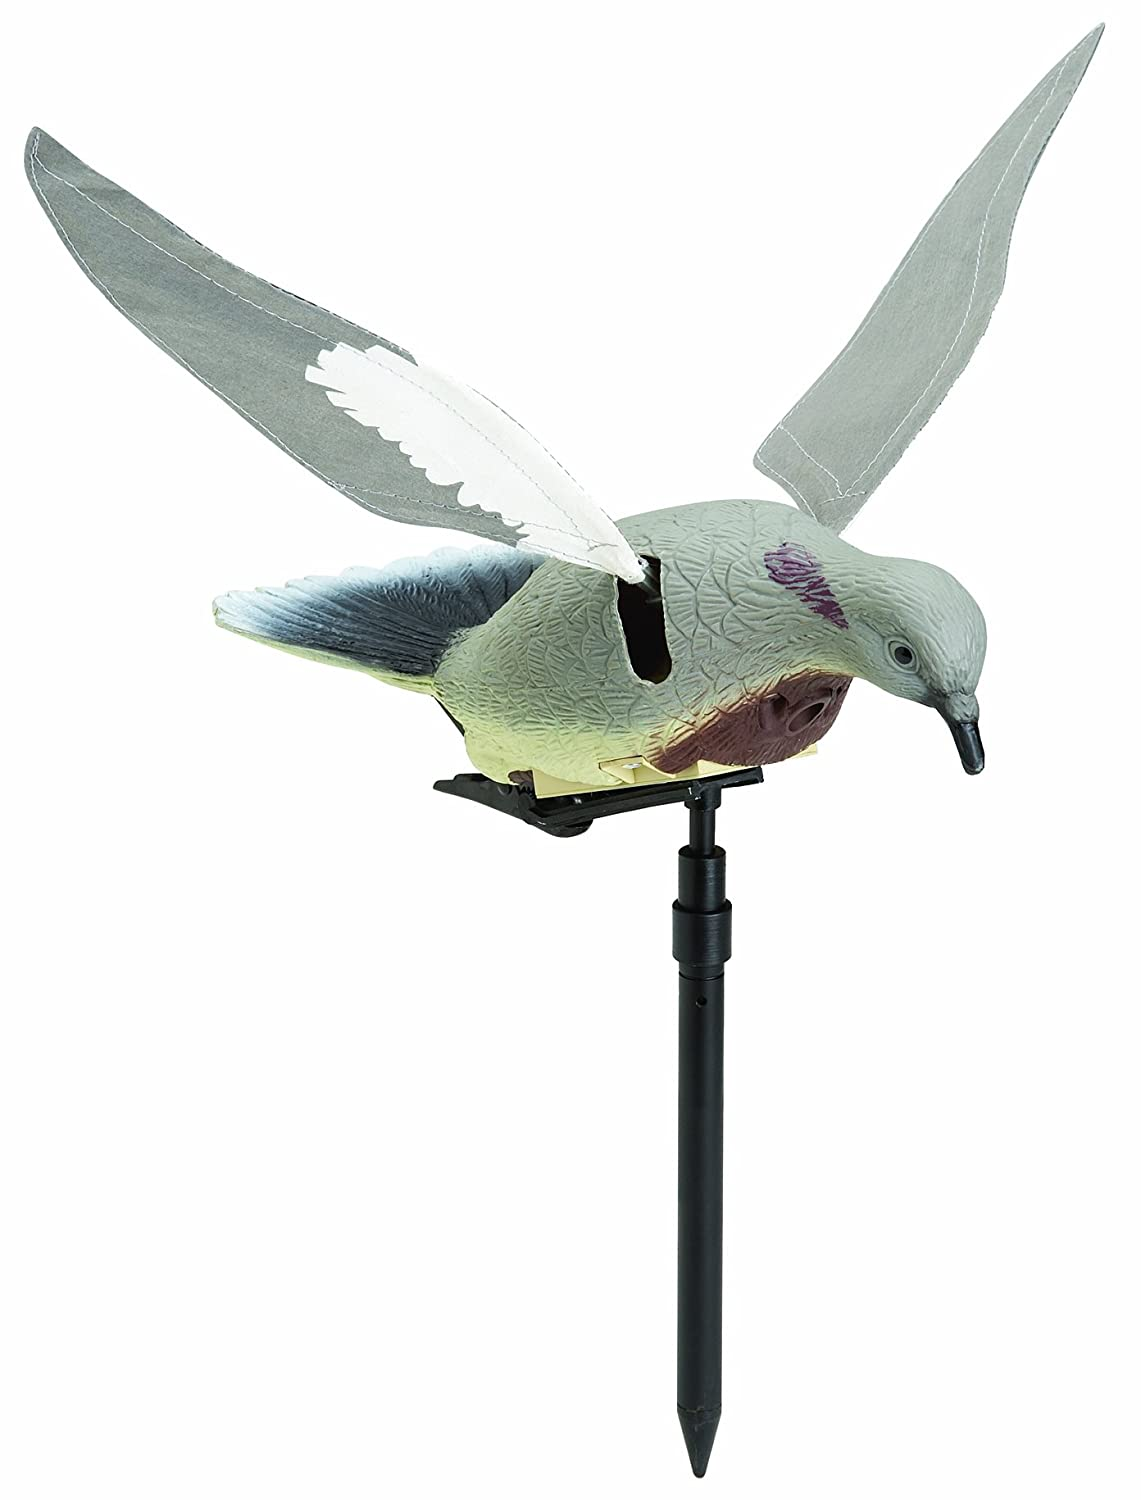 Lucky Duck Rapid Flyer Dove Hunting Decoy Big Rock Sports - Fresno Whse 21-69109-0 52490